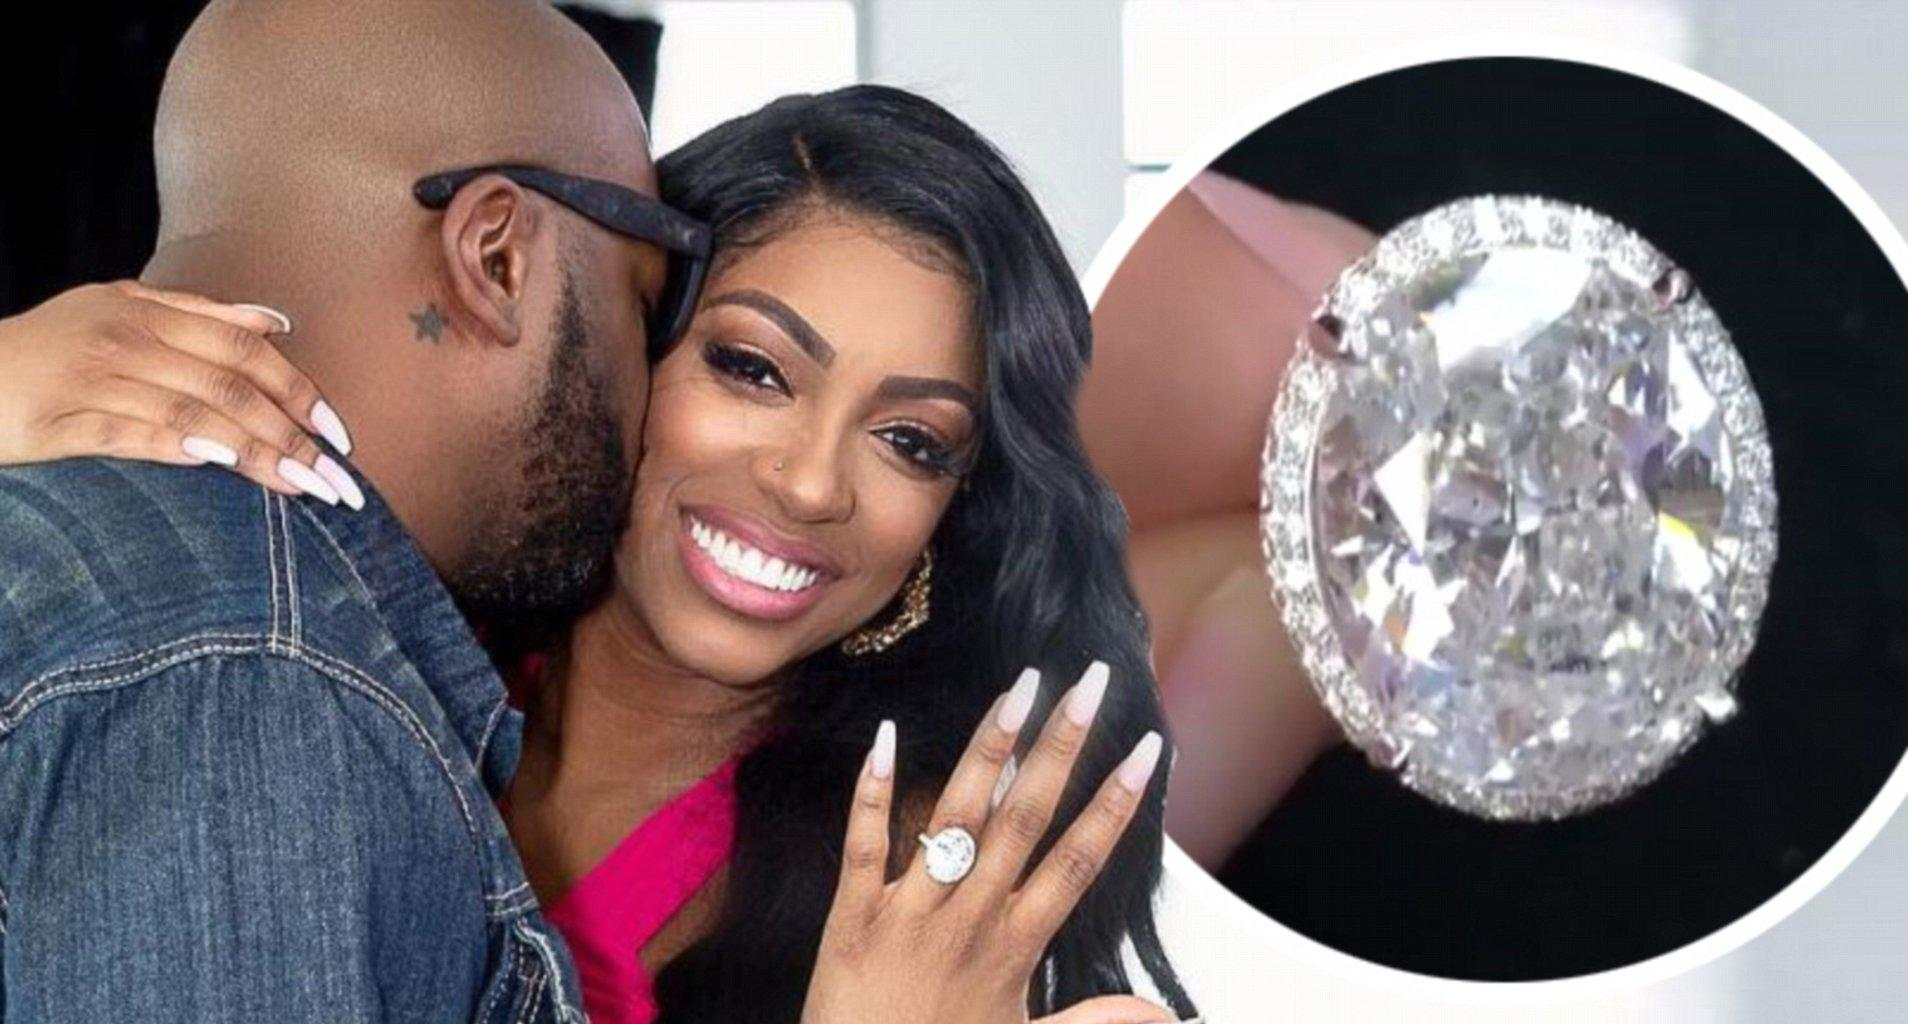 Porsha Williams Looks Amazing In A Royal Blue Sequin Mini Dress While On WWHL And Fans Notice She's Not Wearing Her Ring